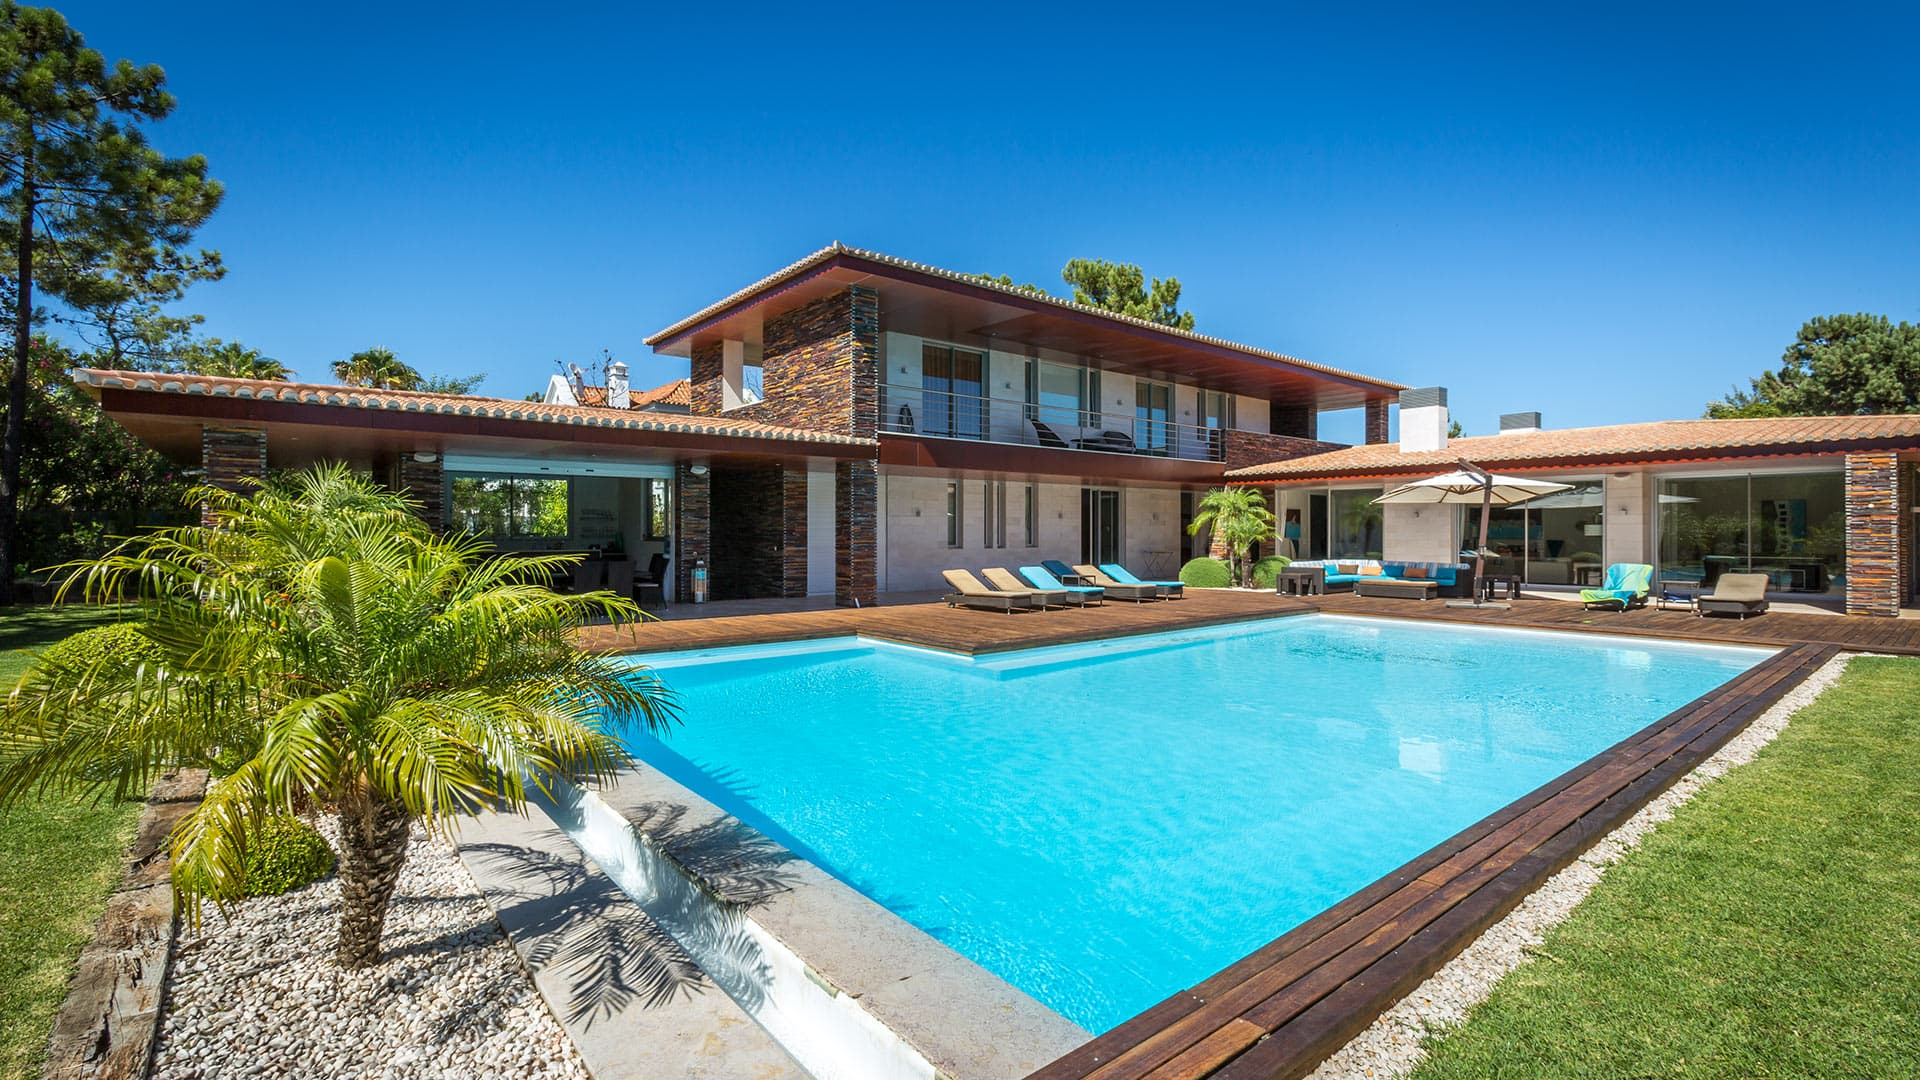 Villa Villa Atlantico, Rental in Algarve